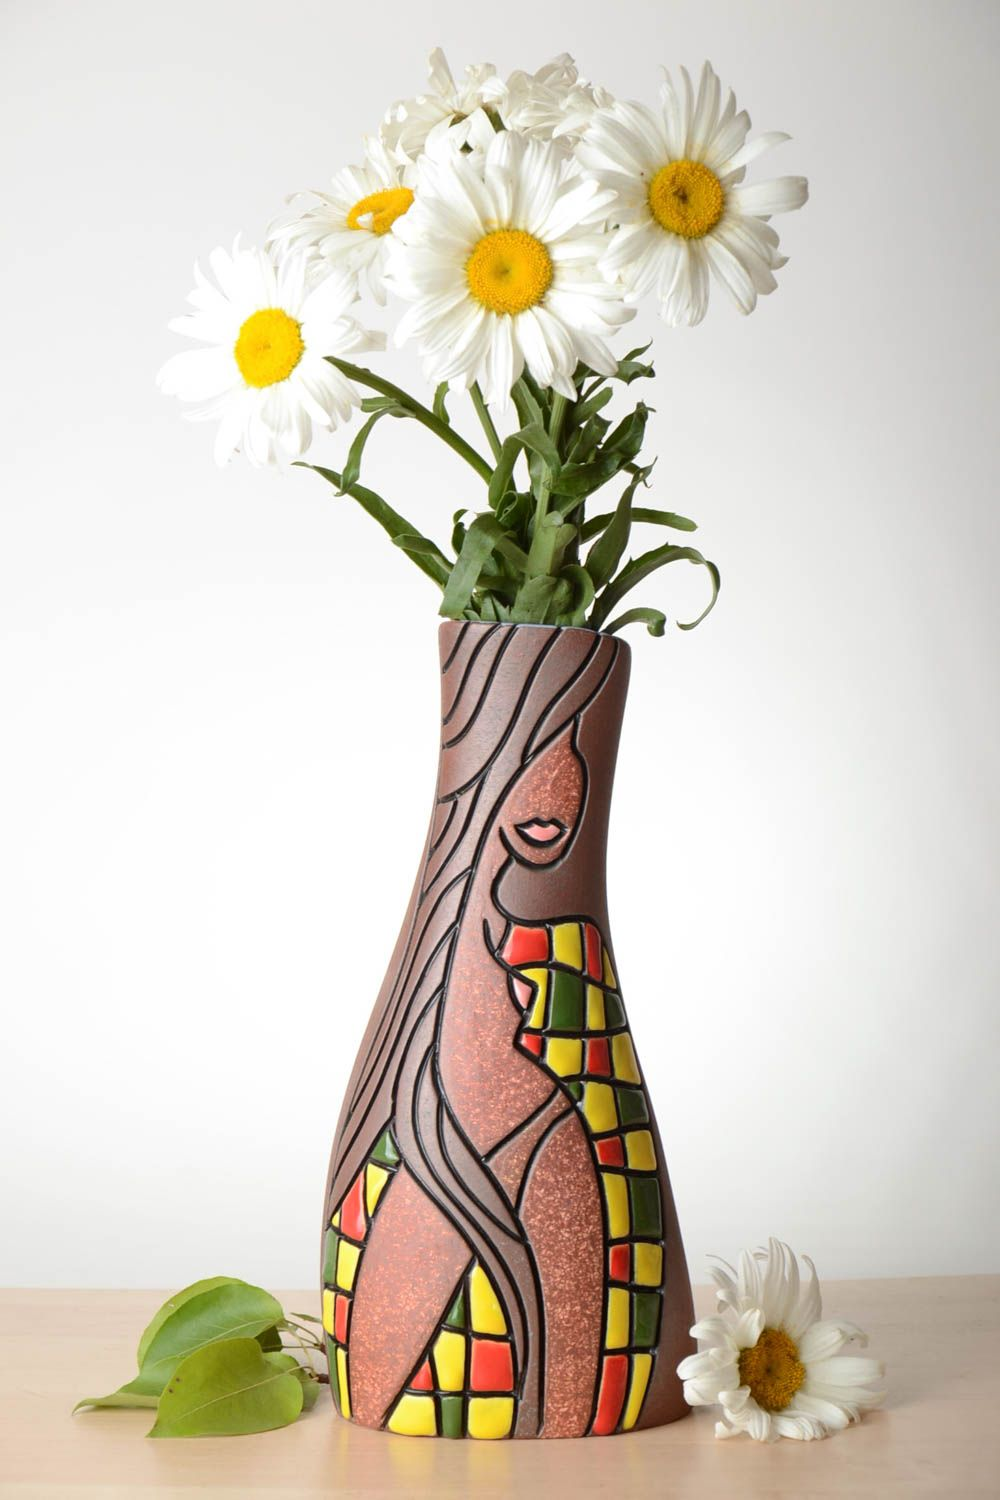 vases Unusual handmade ceramic vase 1.7 l decorative clay vase flower vase  design - MADEheart.